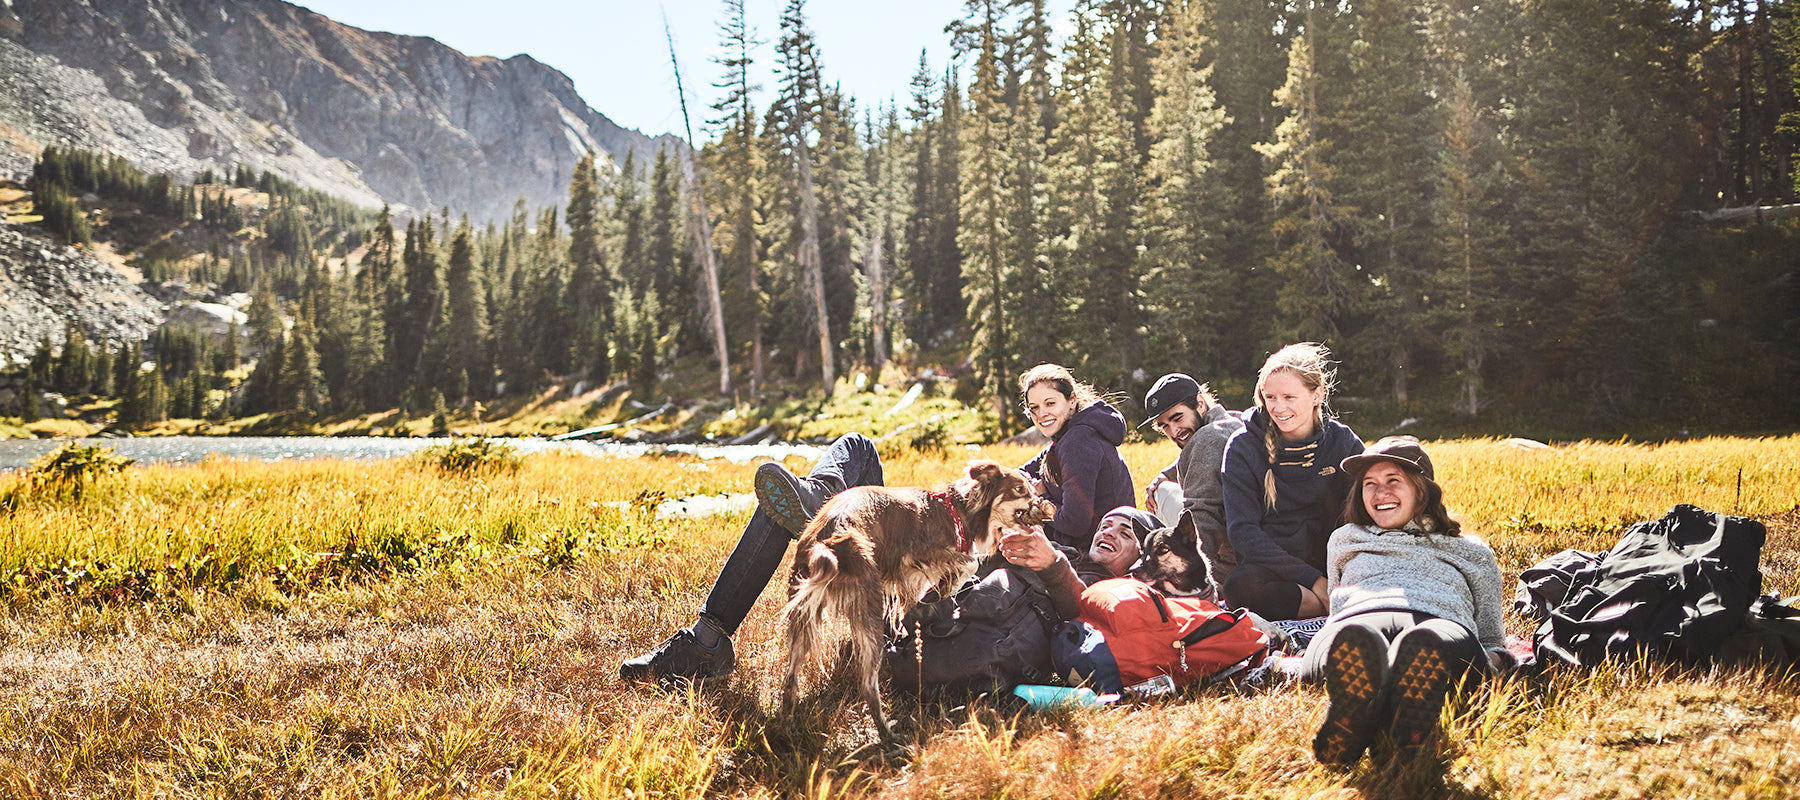 Group of hikers in the forest resting in the sun with a dog